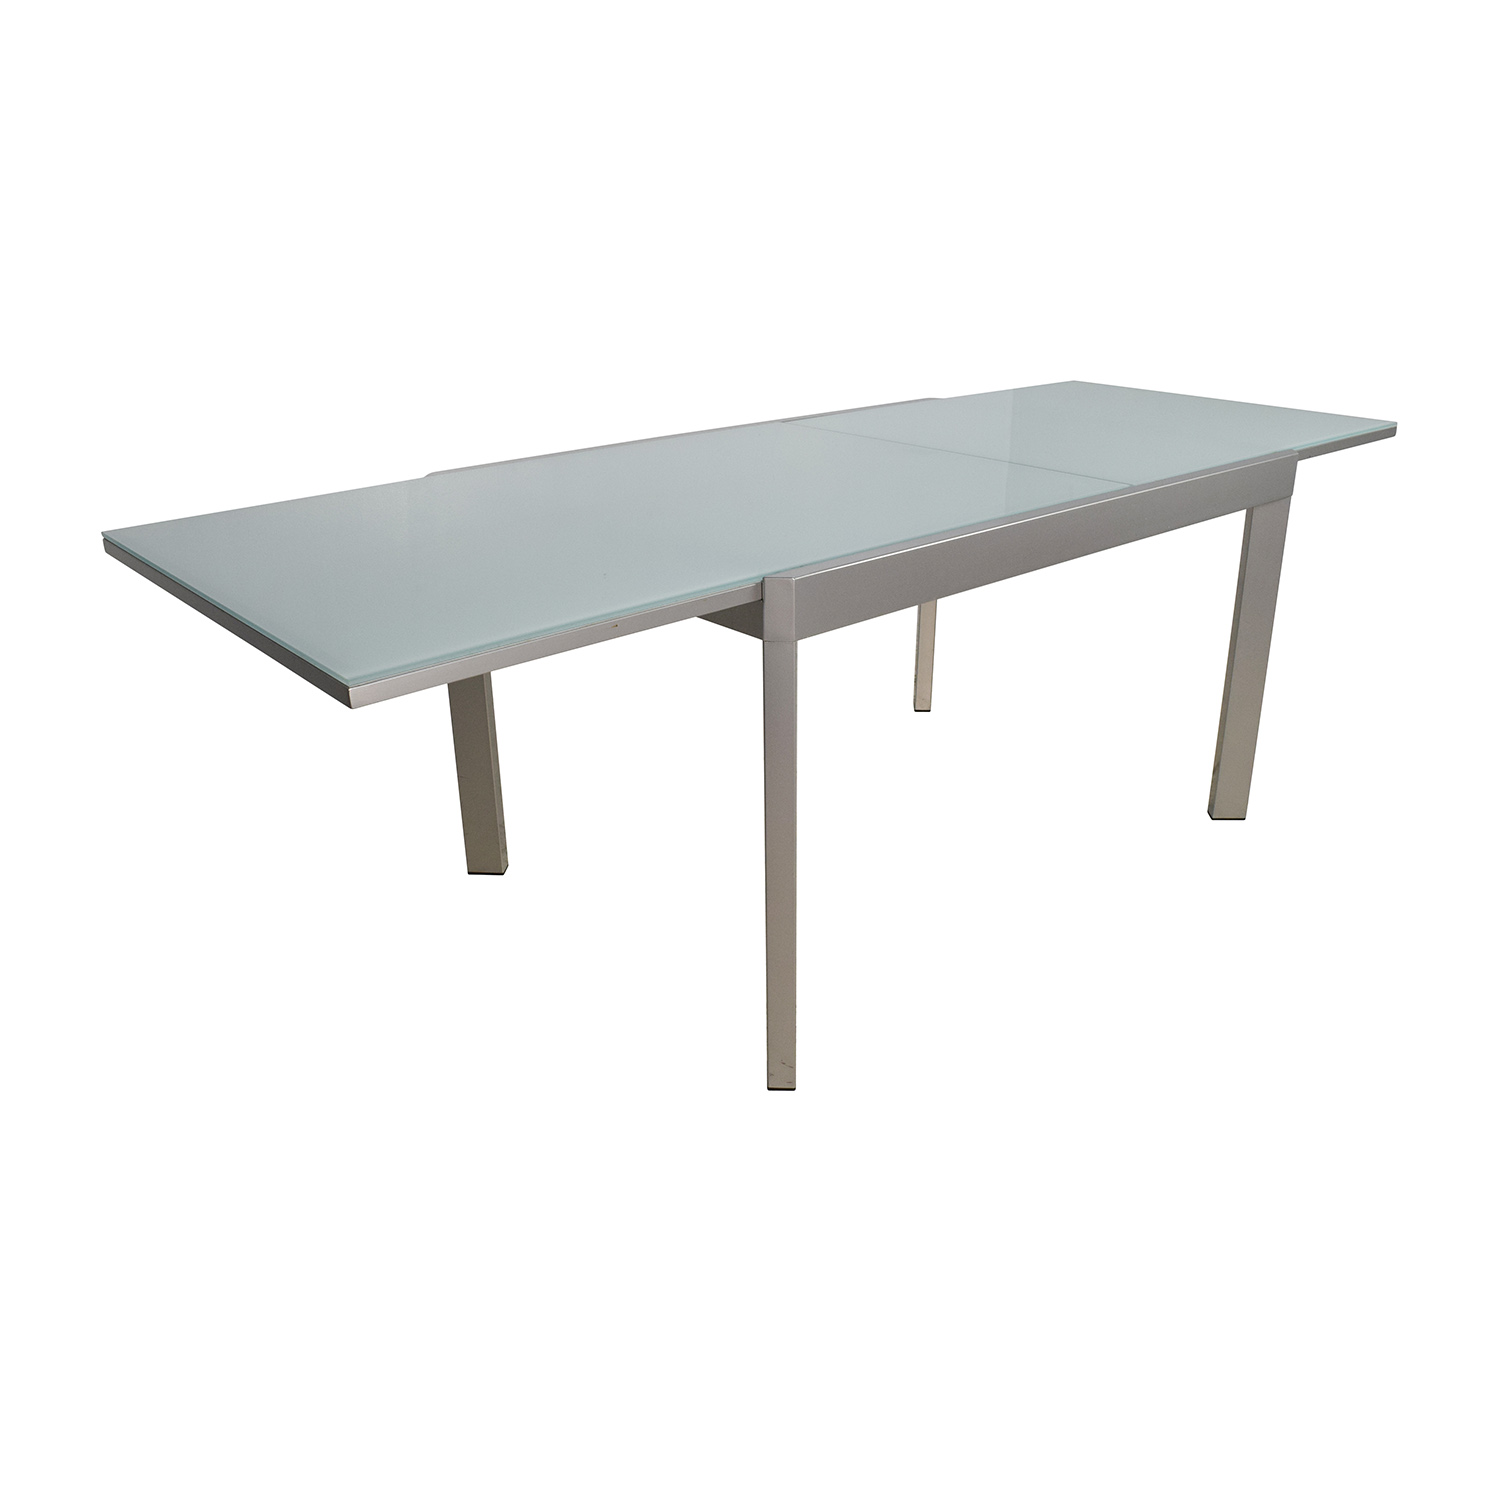 86 off calligaris calligaris extendable glass dining Glass dining table